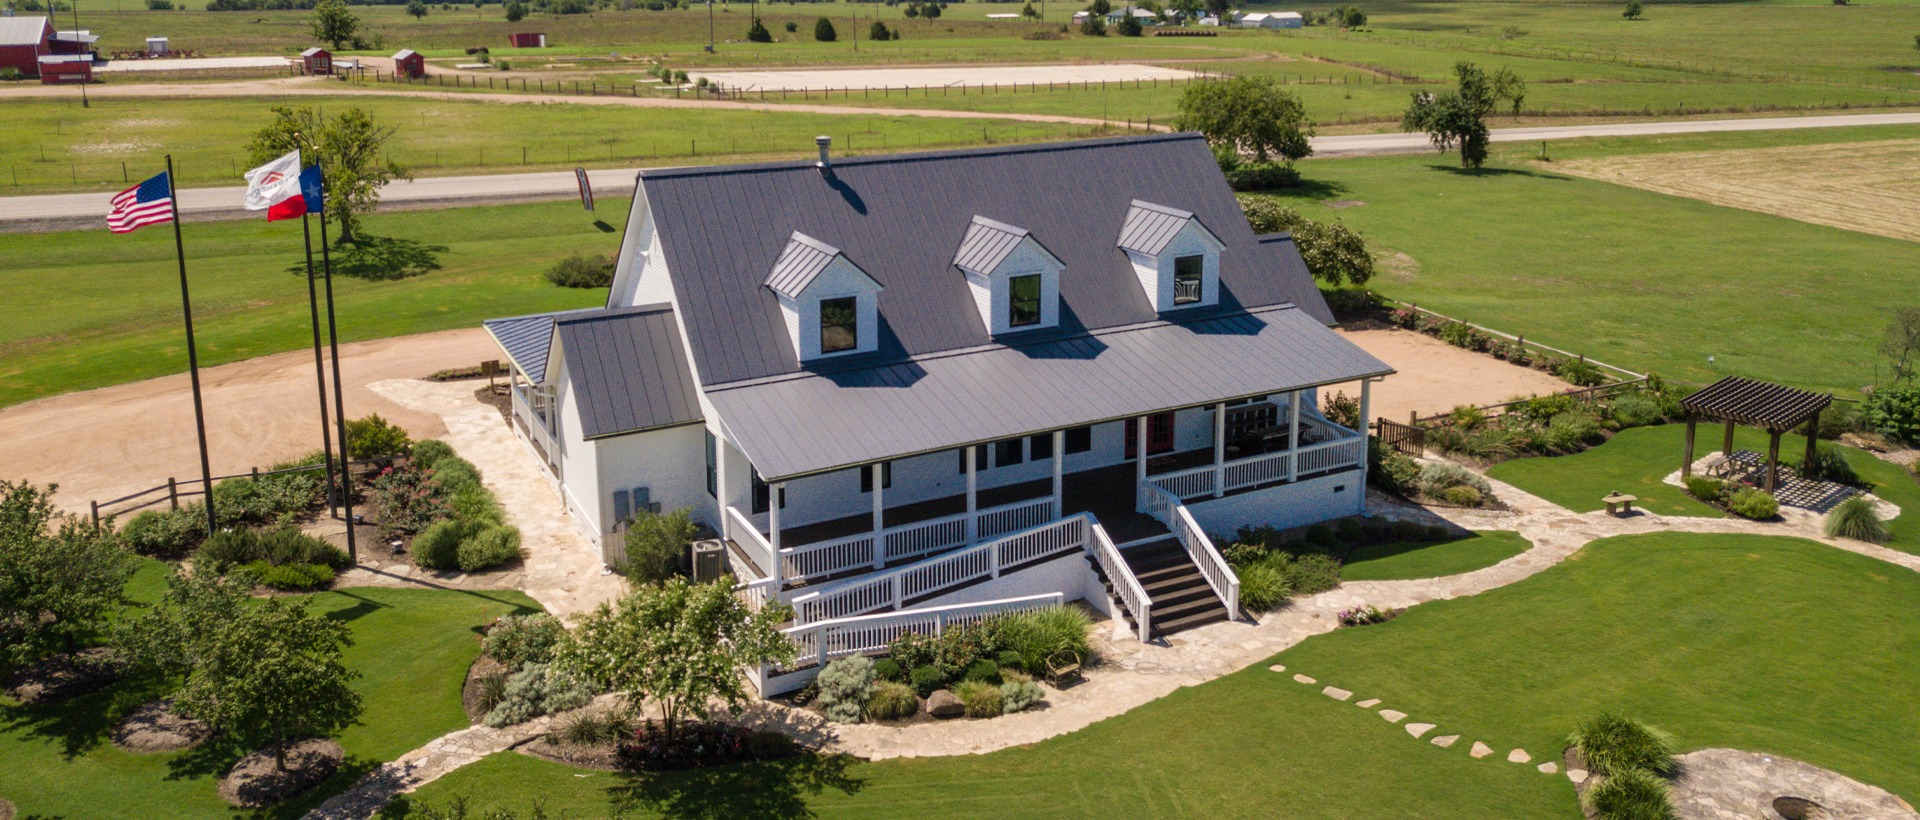 Texas Casual Cottages - Schulte Roofing